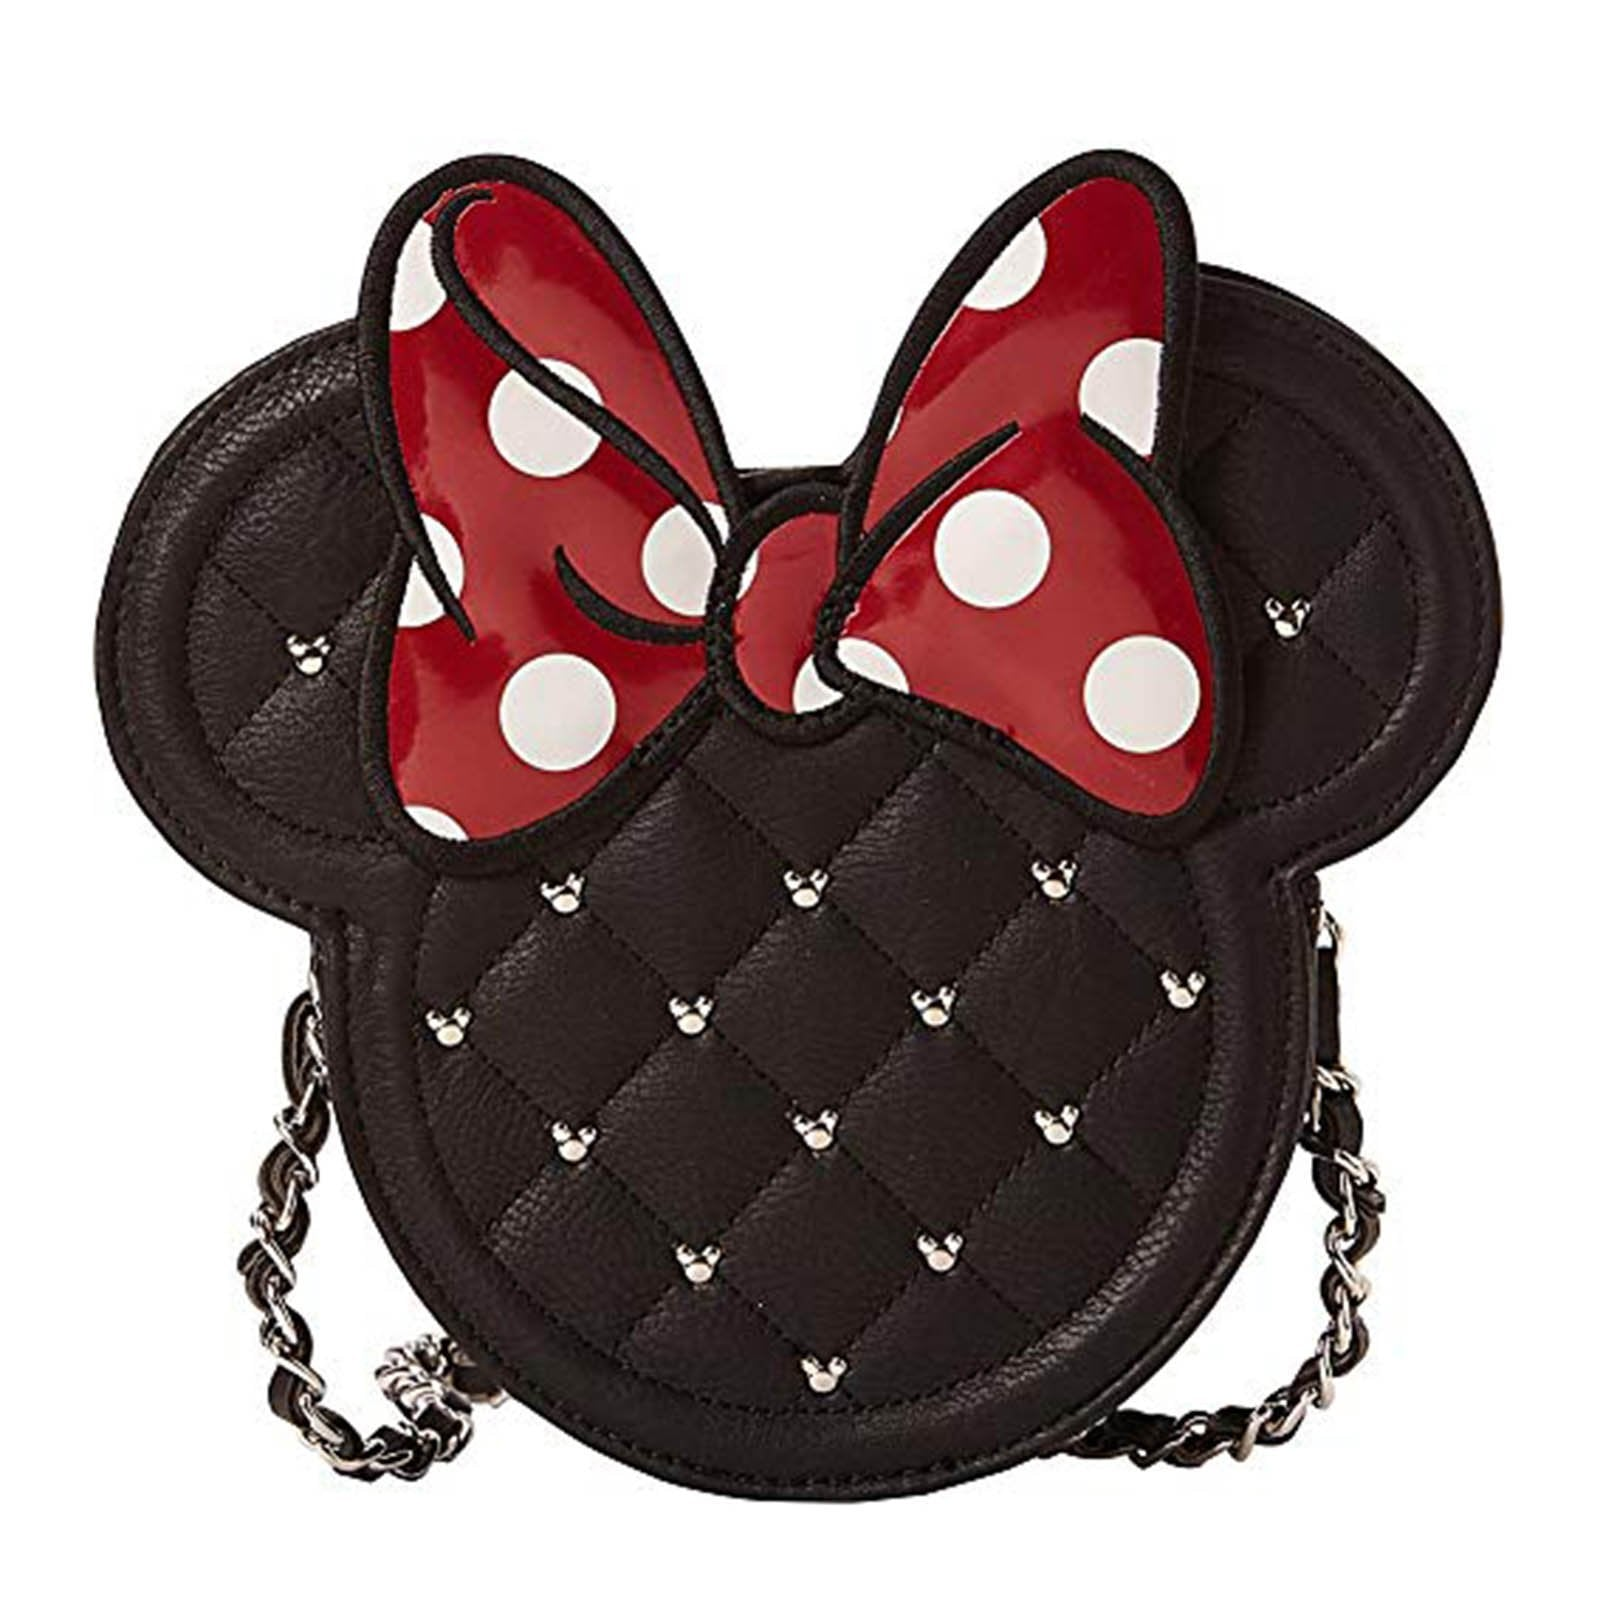 3d5f6873714b Loungefly Disney Minnie Mouse Quilted Bow Crossbody Bag | Radar Toys –  Radar Toys